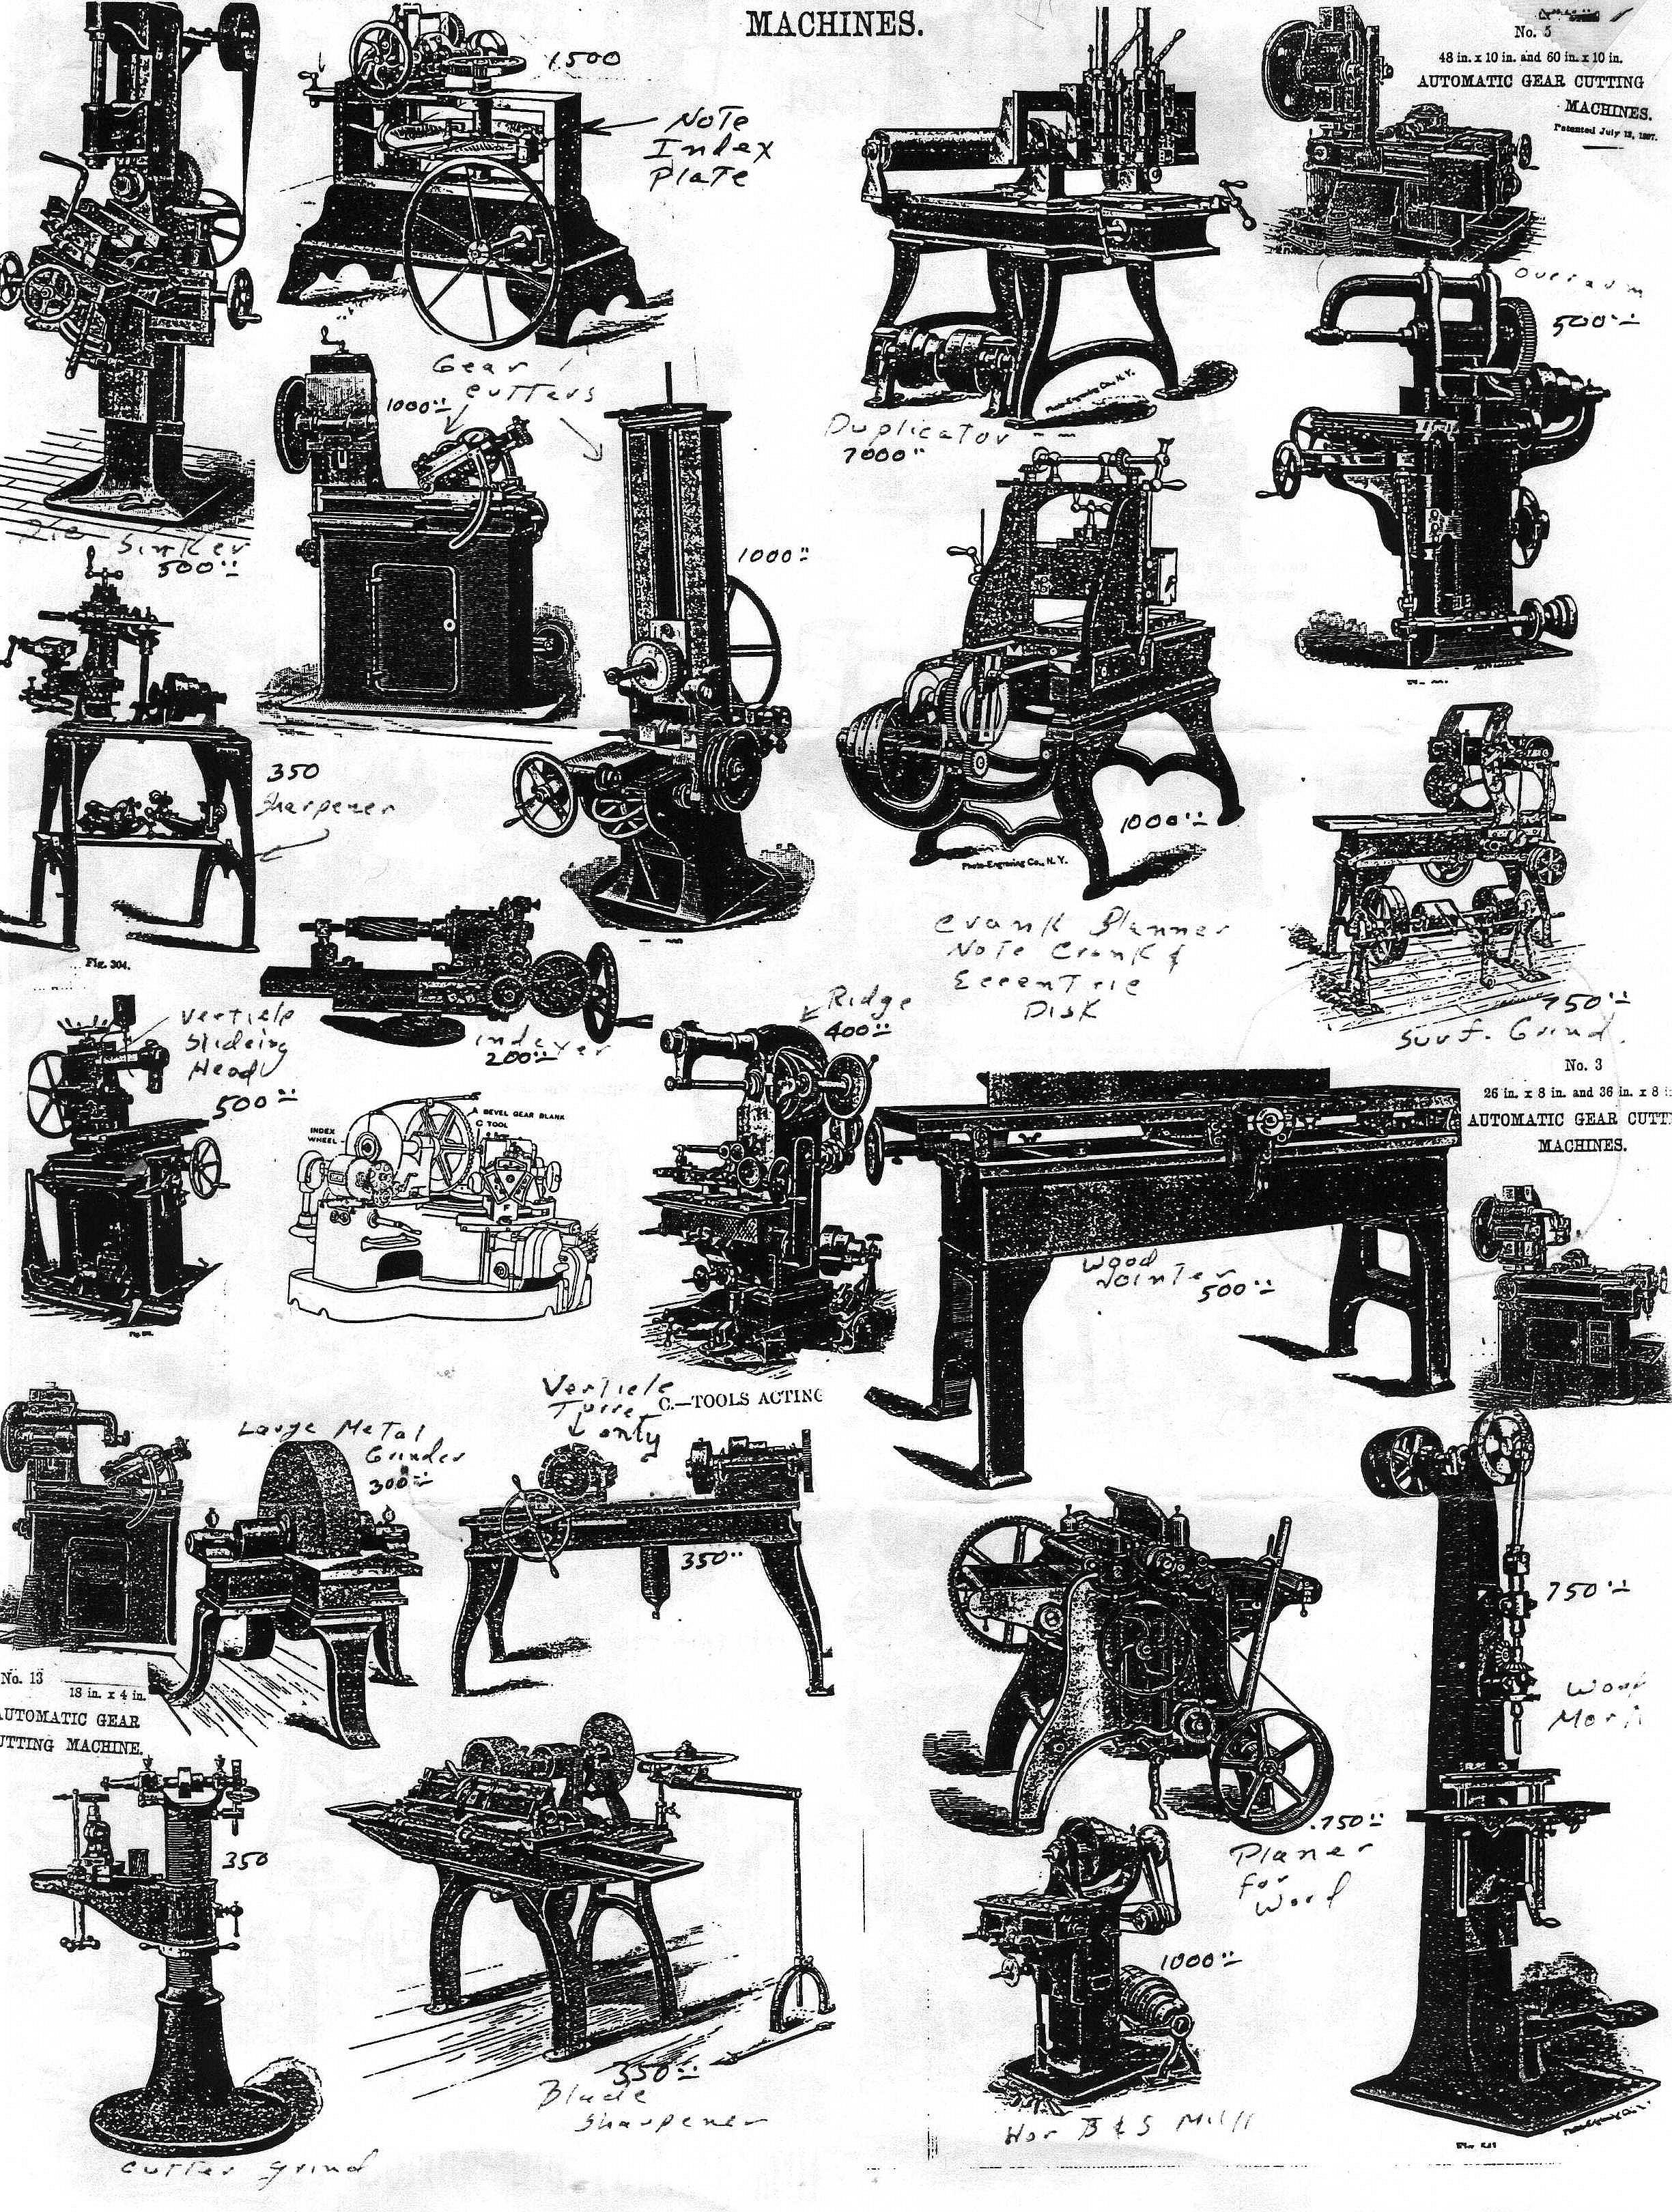 http://antiquemachinery.com/want%20ad%20new%20pg4.JPG